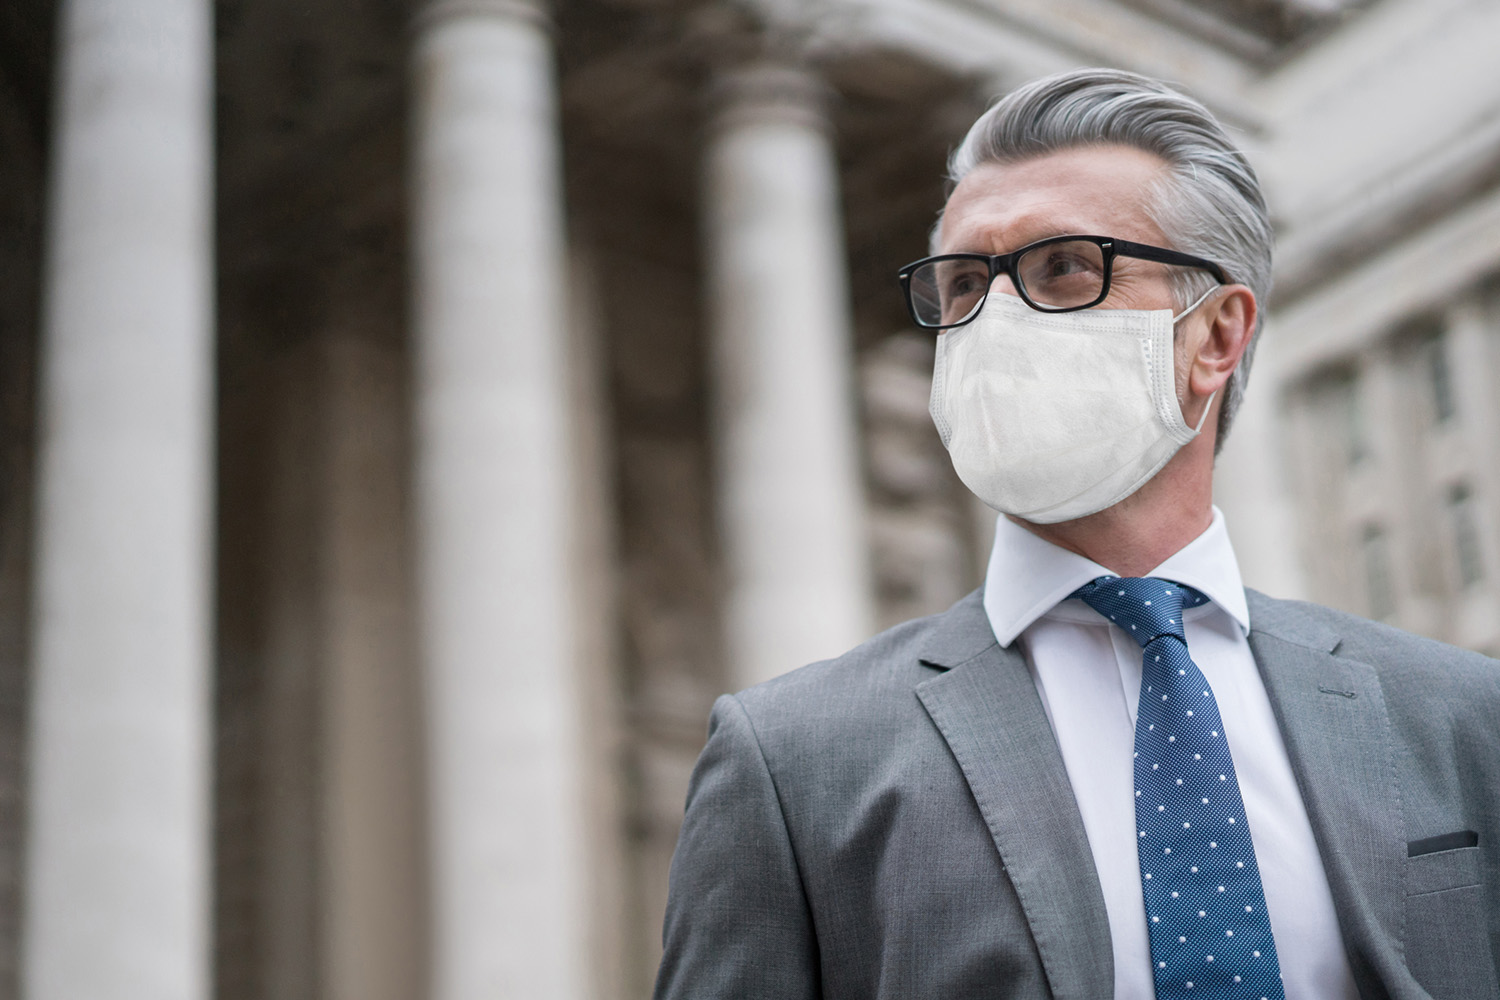 Portrait of a successful business man on the street wearing a facemask to avoid COVID-19 – Pandemic concepts